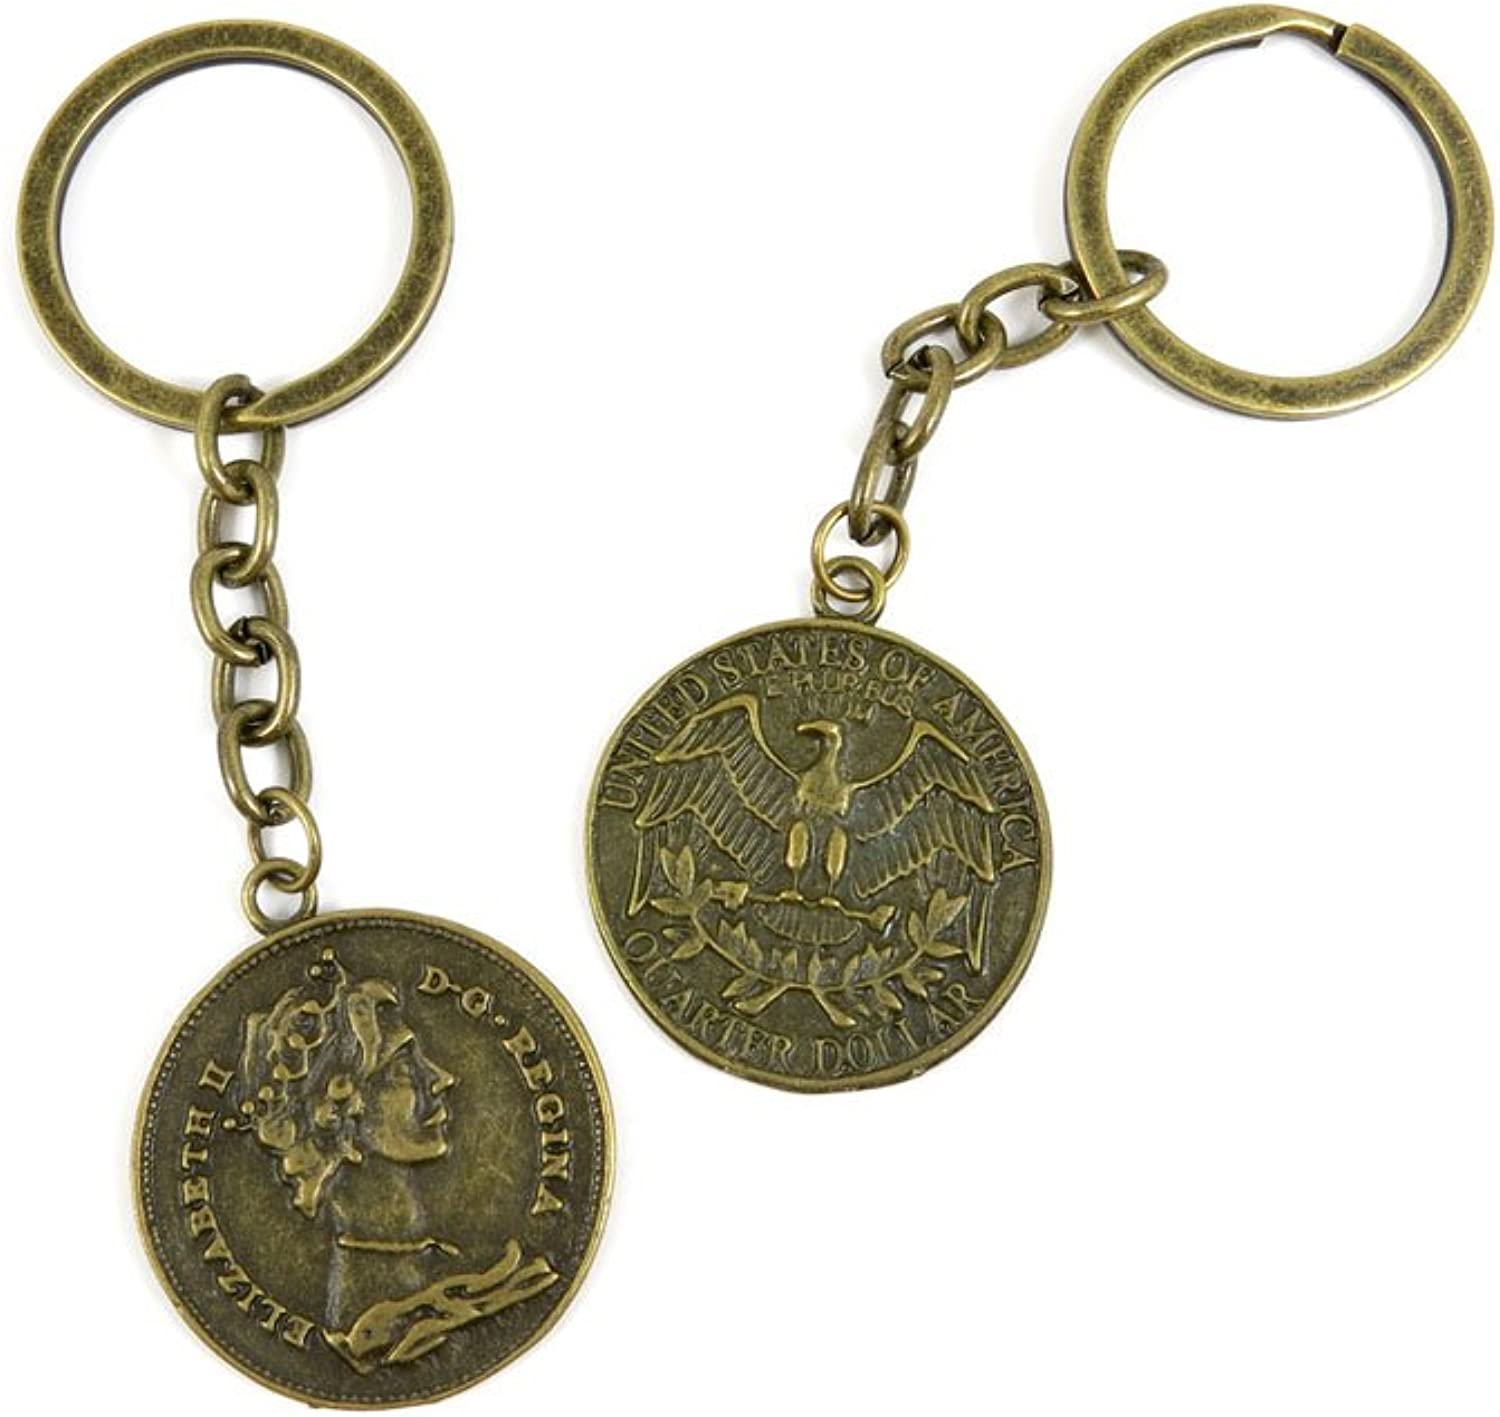 80 PCS Keyring Car Door Key Ring Tag Chain Keychain Wholesale Suppliers Charms Handmade P6JT2 US Dollar King Sign